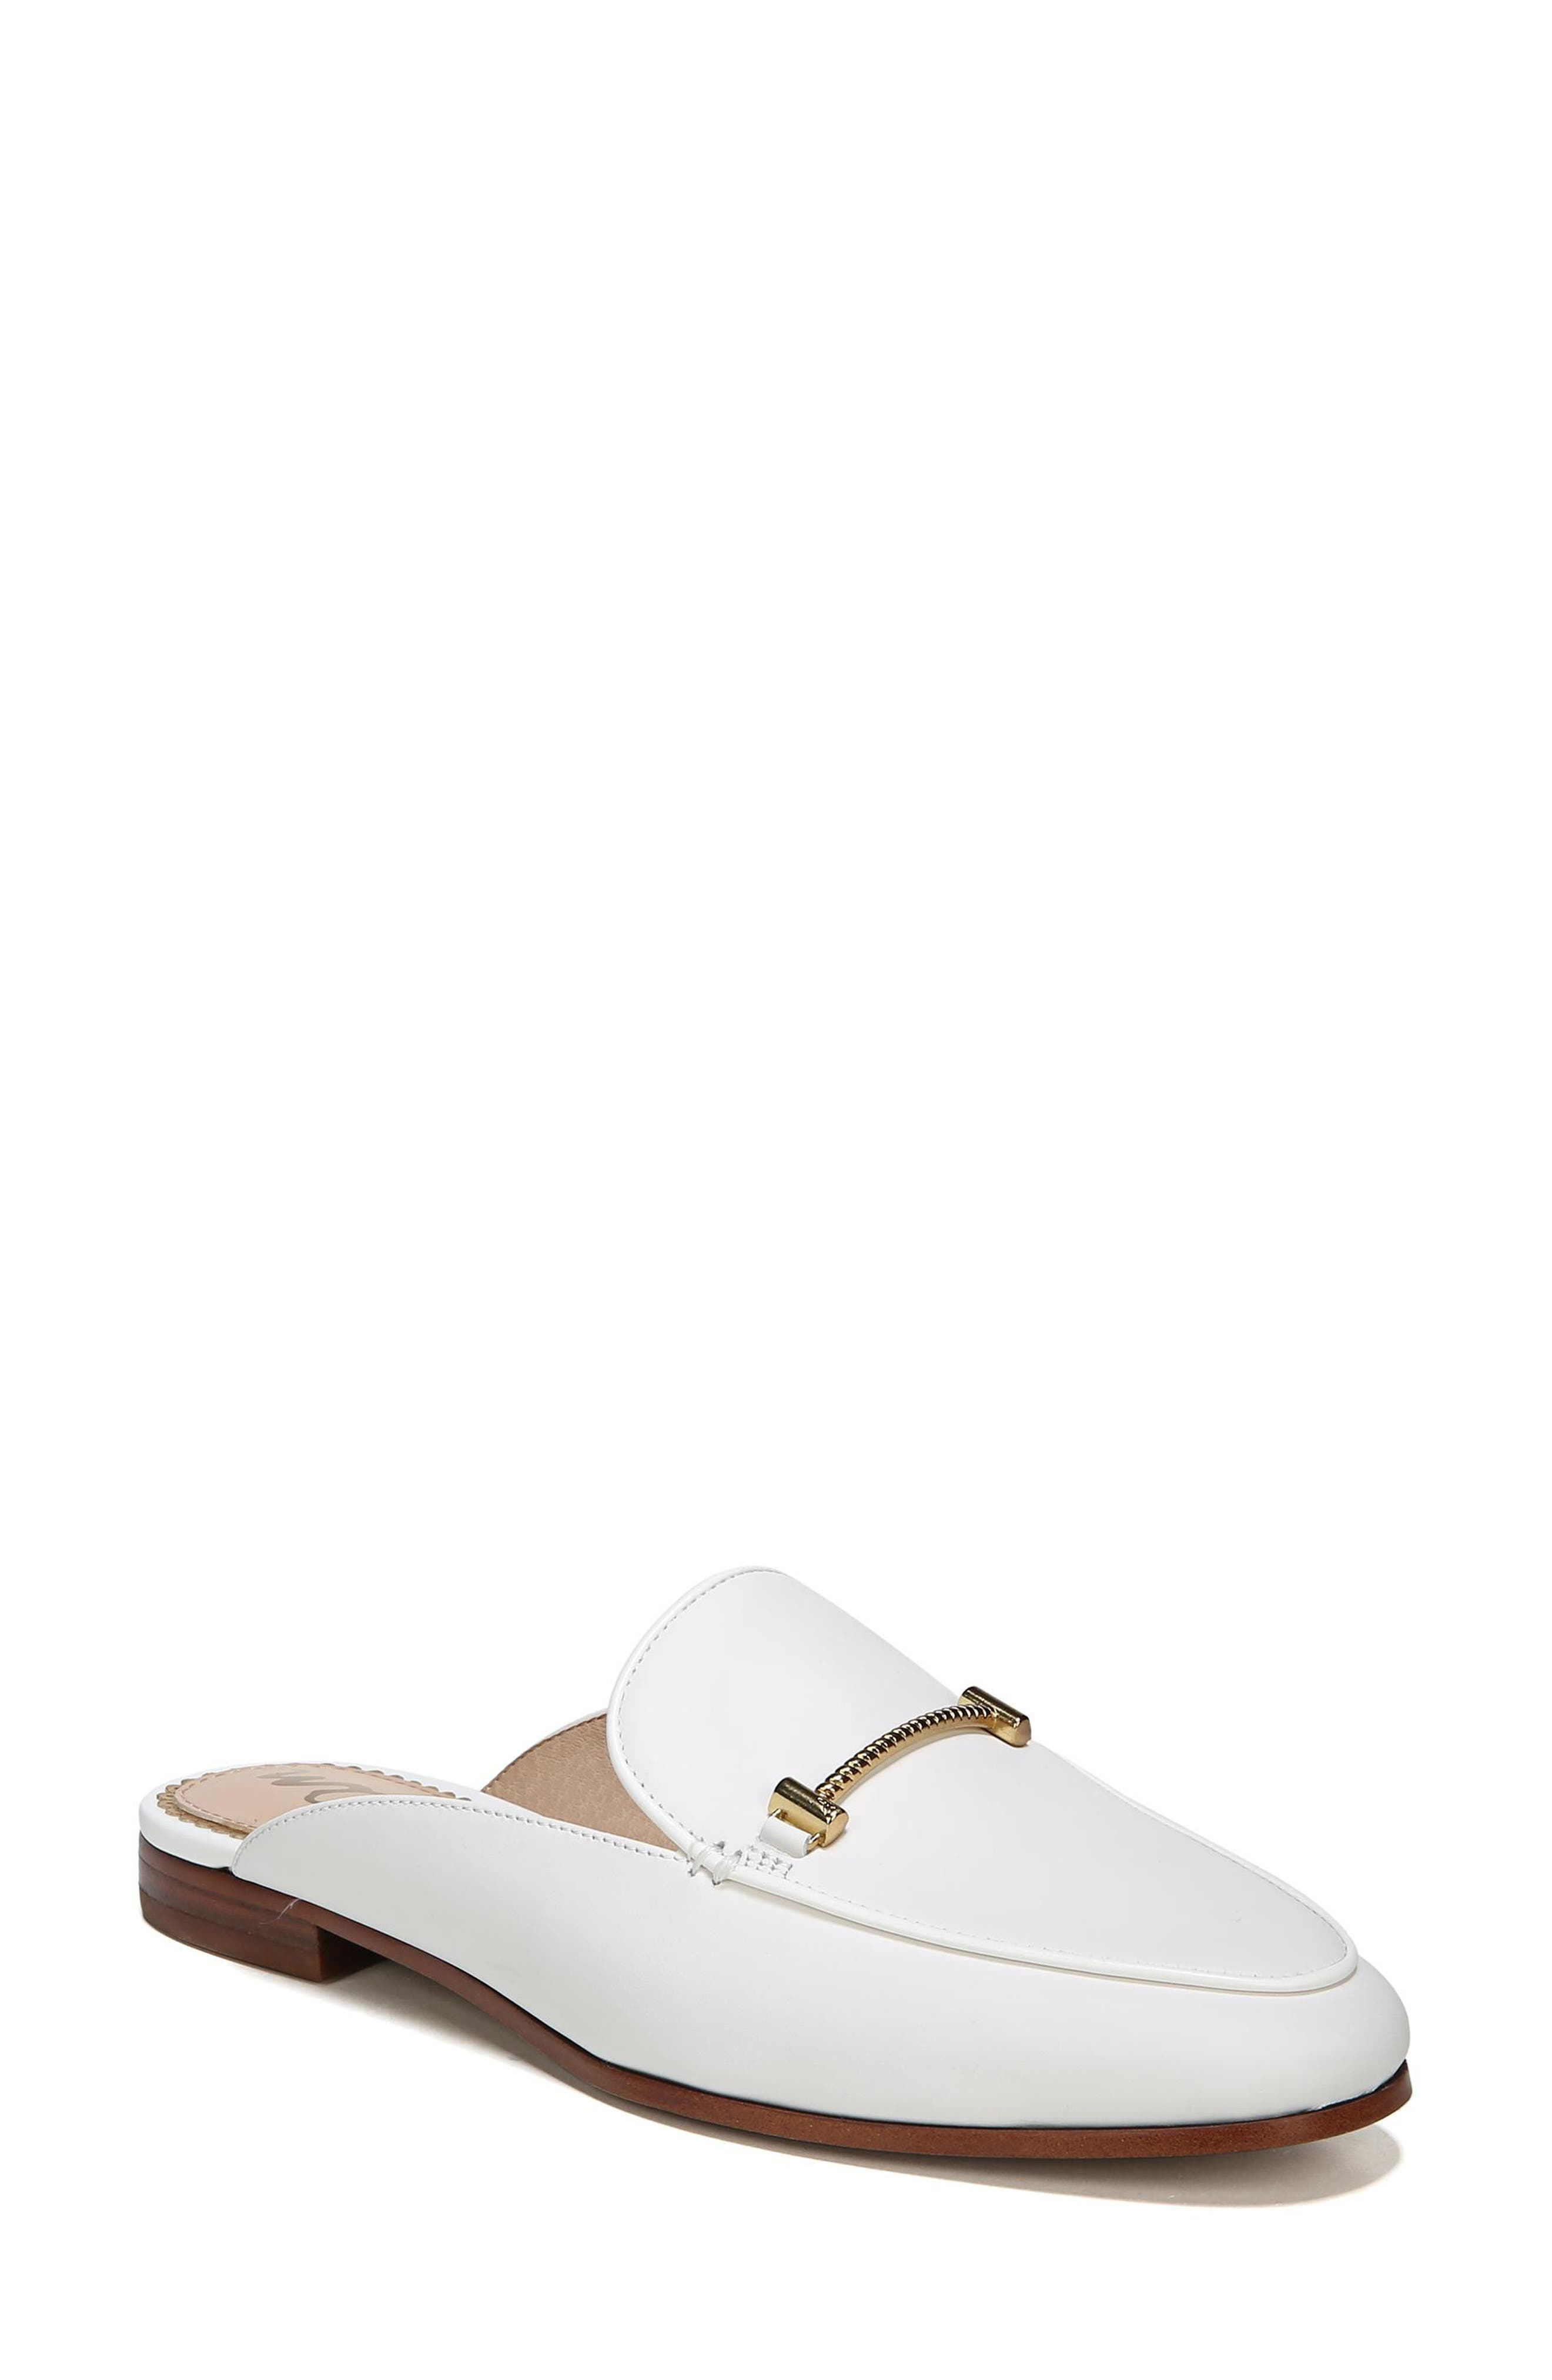 Laurna Mule,                             Alternate thumbnail 9, color,                             BRIGHT WHITE LEATHER